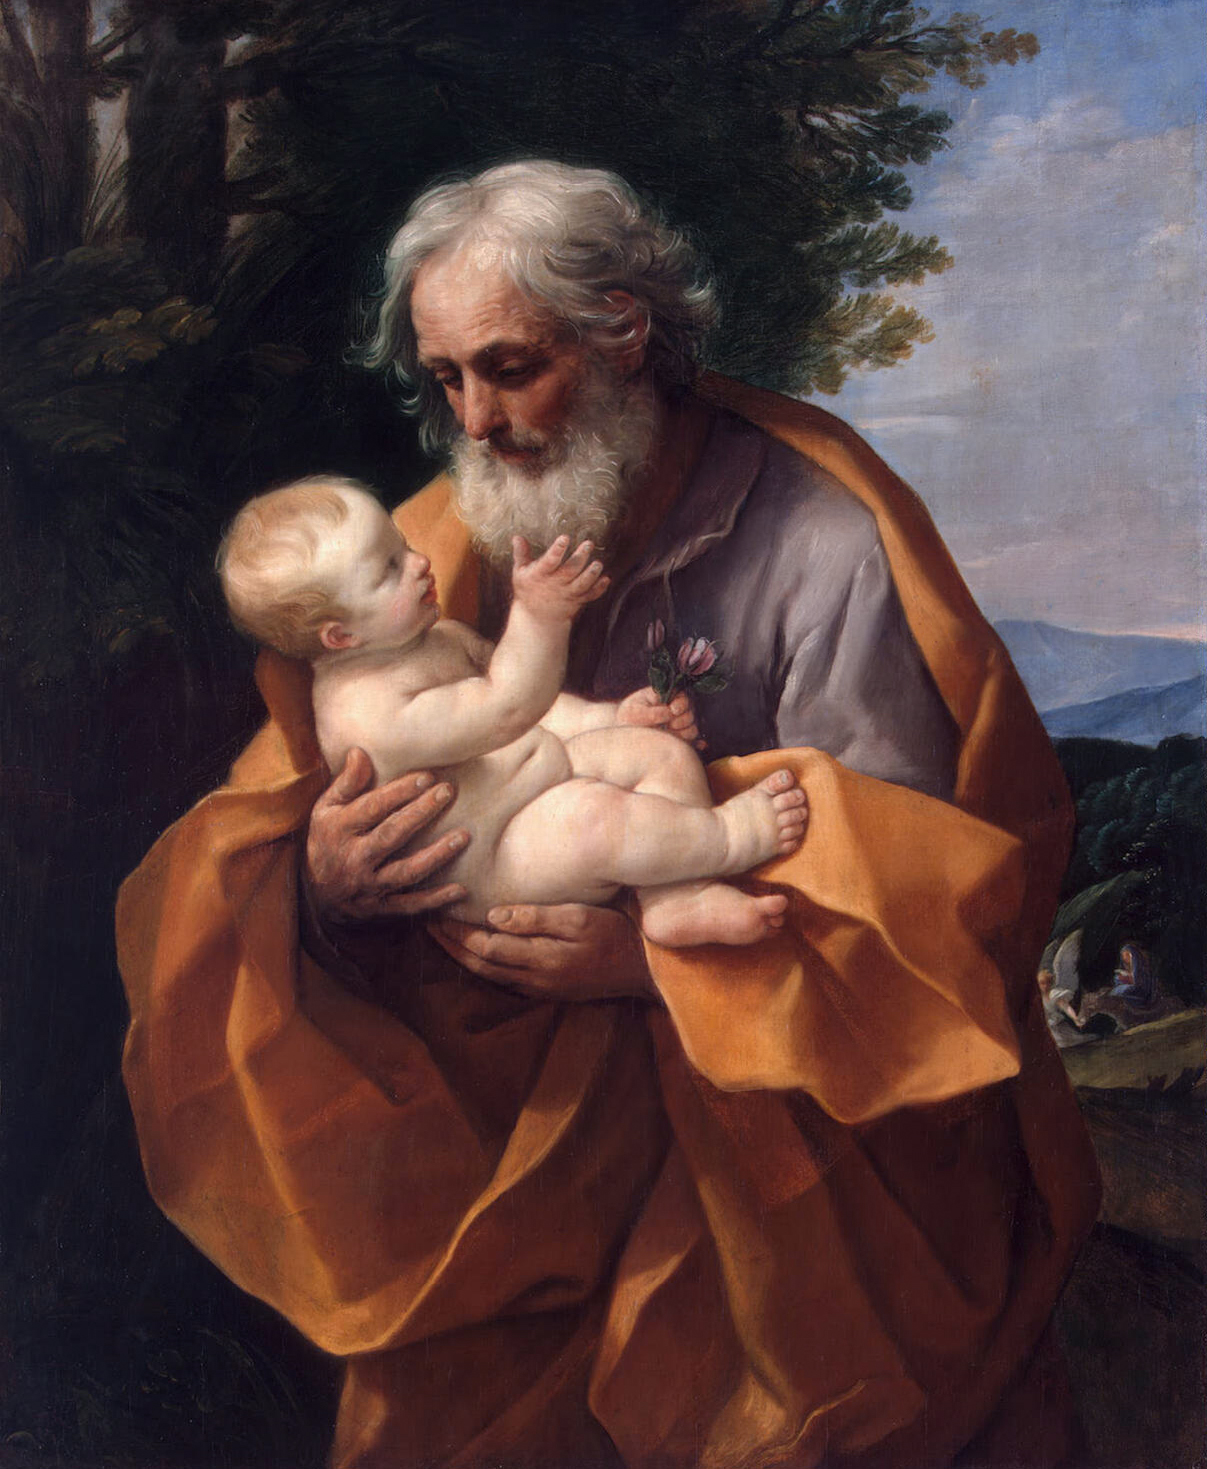 Saint_Joseph_with_the_Infant_Jesus_by_Guido_Reni,_c_1635.jpg (651×800)